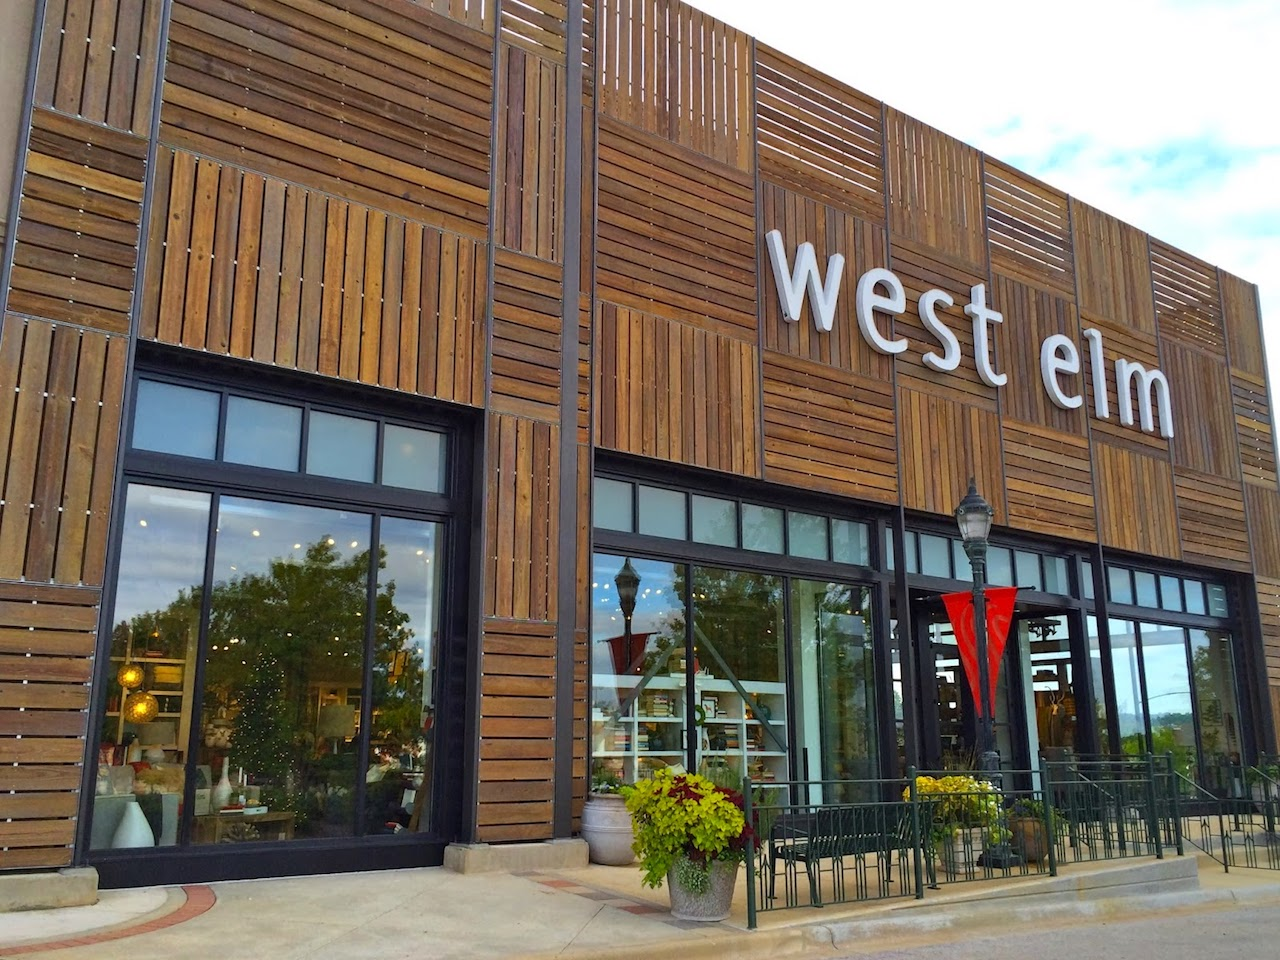 west elm a division of san francisco based williams sonoma was launched in 2002 and opened its first atlanta area store at atlantic station in 2005 - West Elm Store